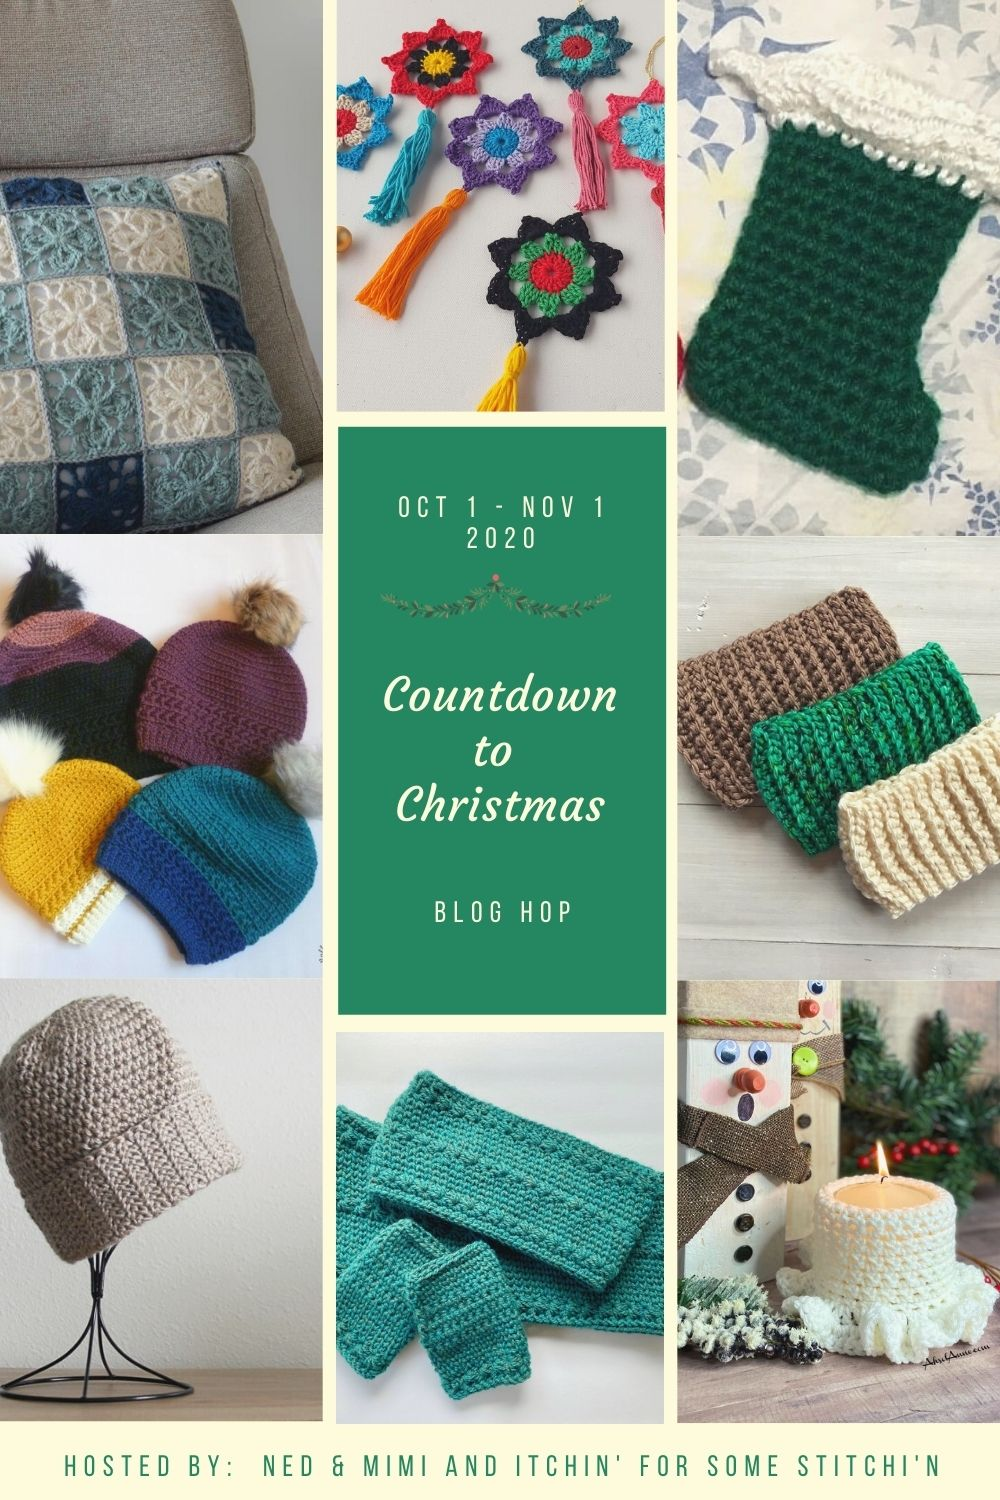 Countdown to Christmas Blog Hop: Free Crochet Patterns, Giveaway, and a Bundle of Fun!